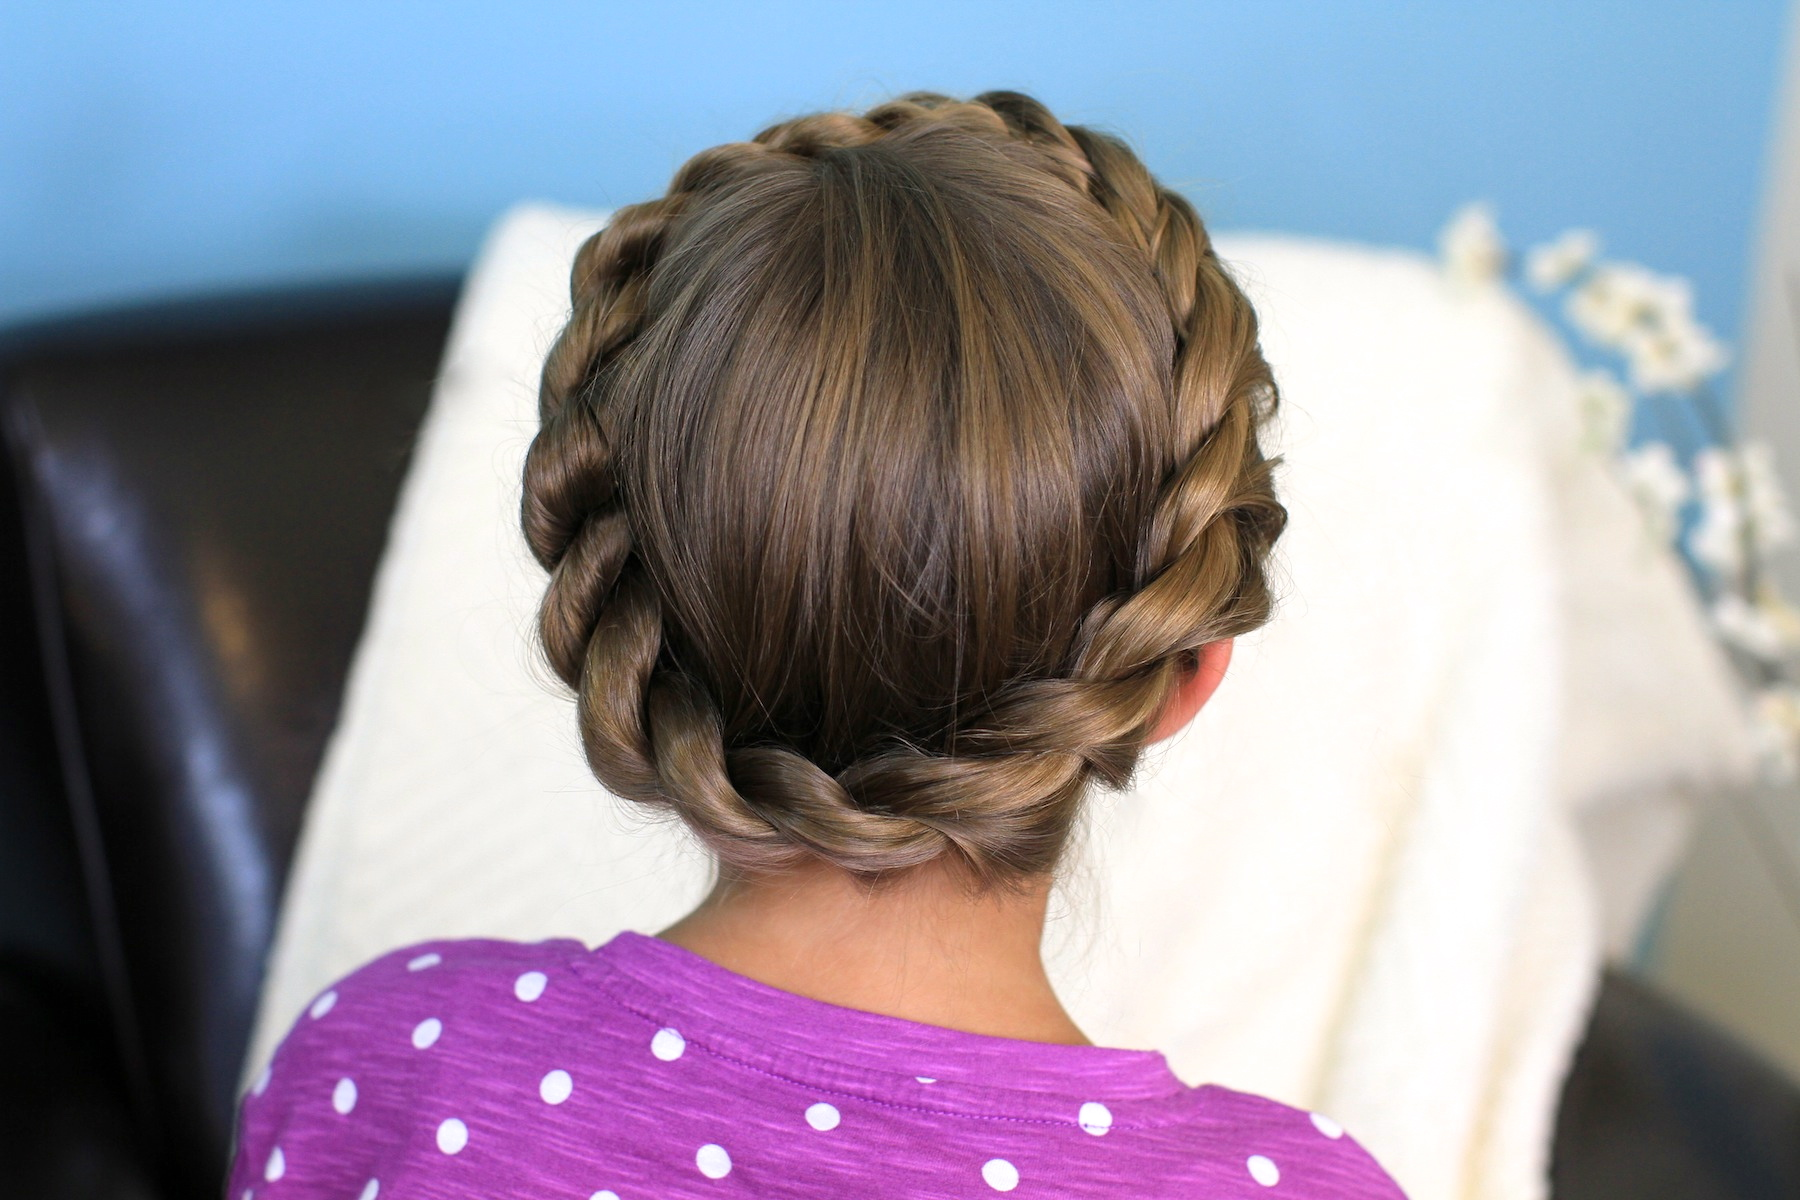 Epic braid style Kids Hairstyle